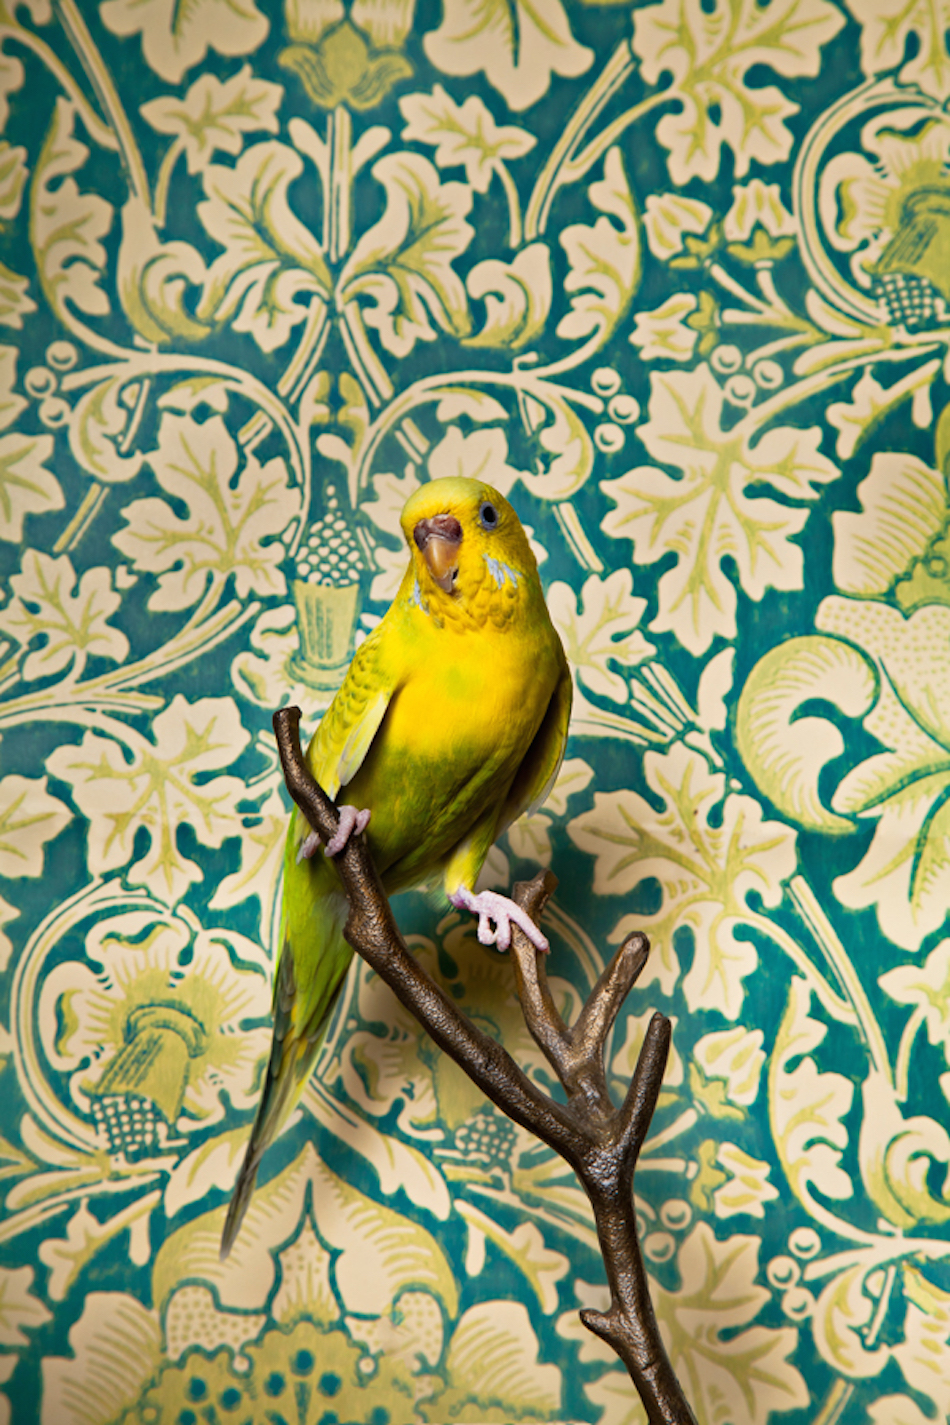 Common Parakeet No. 7034 / Birds of a Feather. (Photography by Claire Rosen)